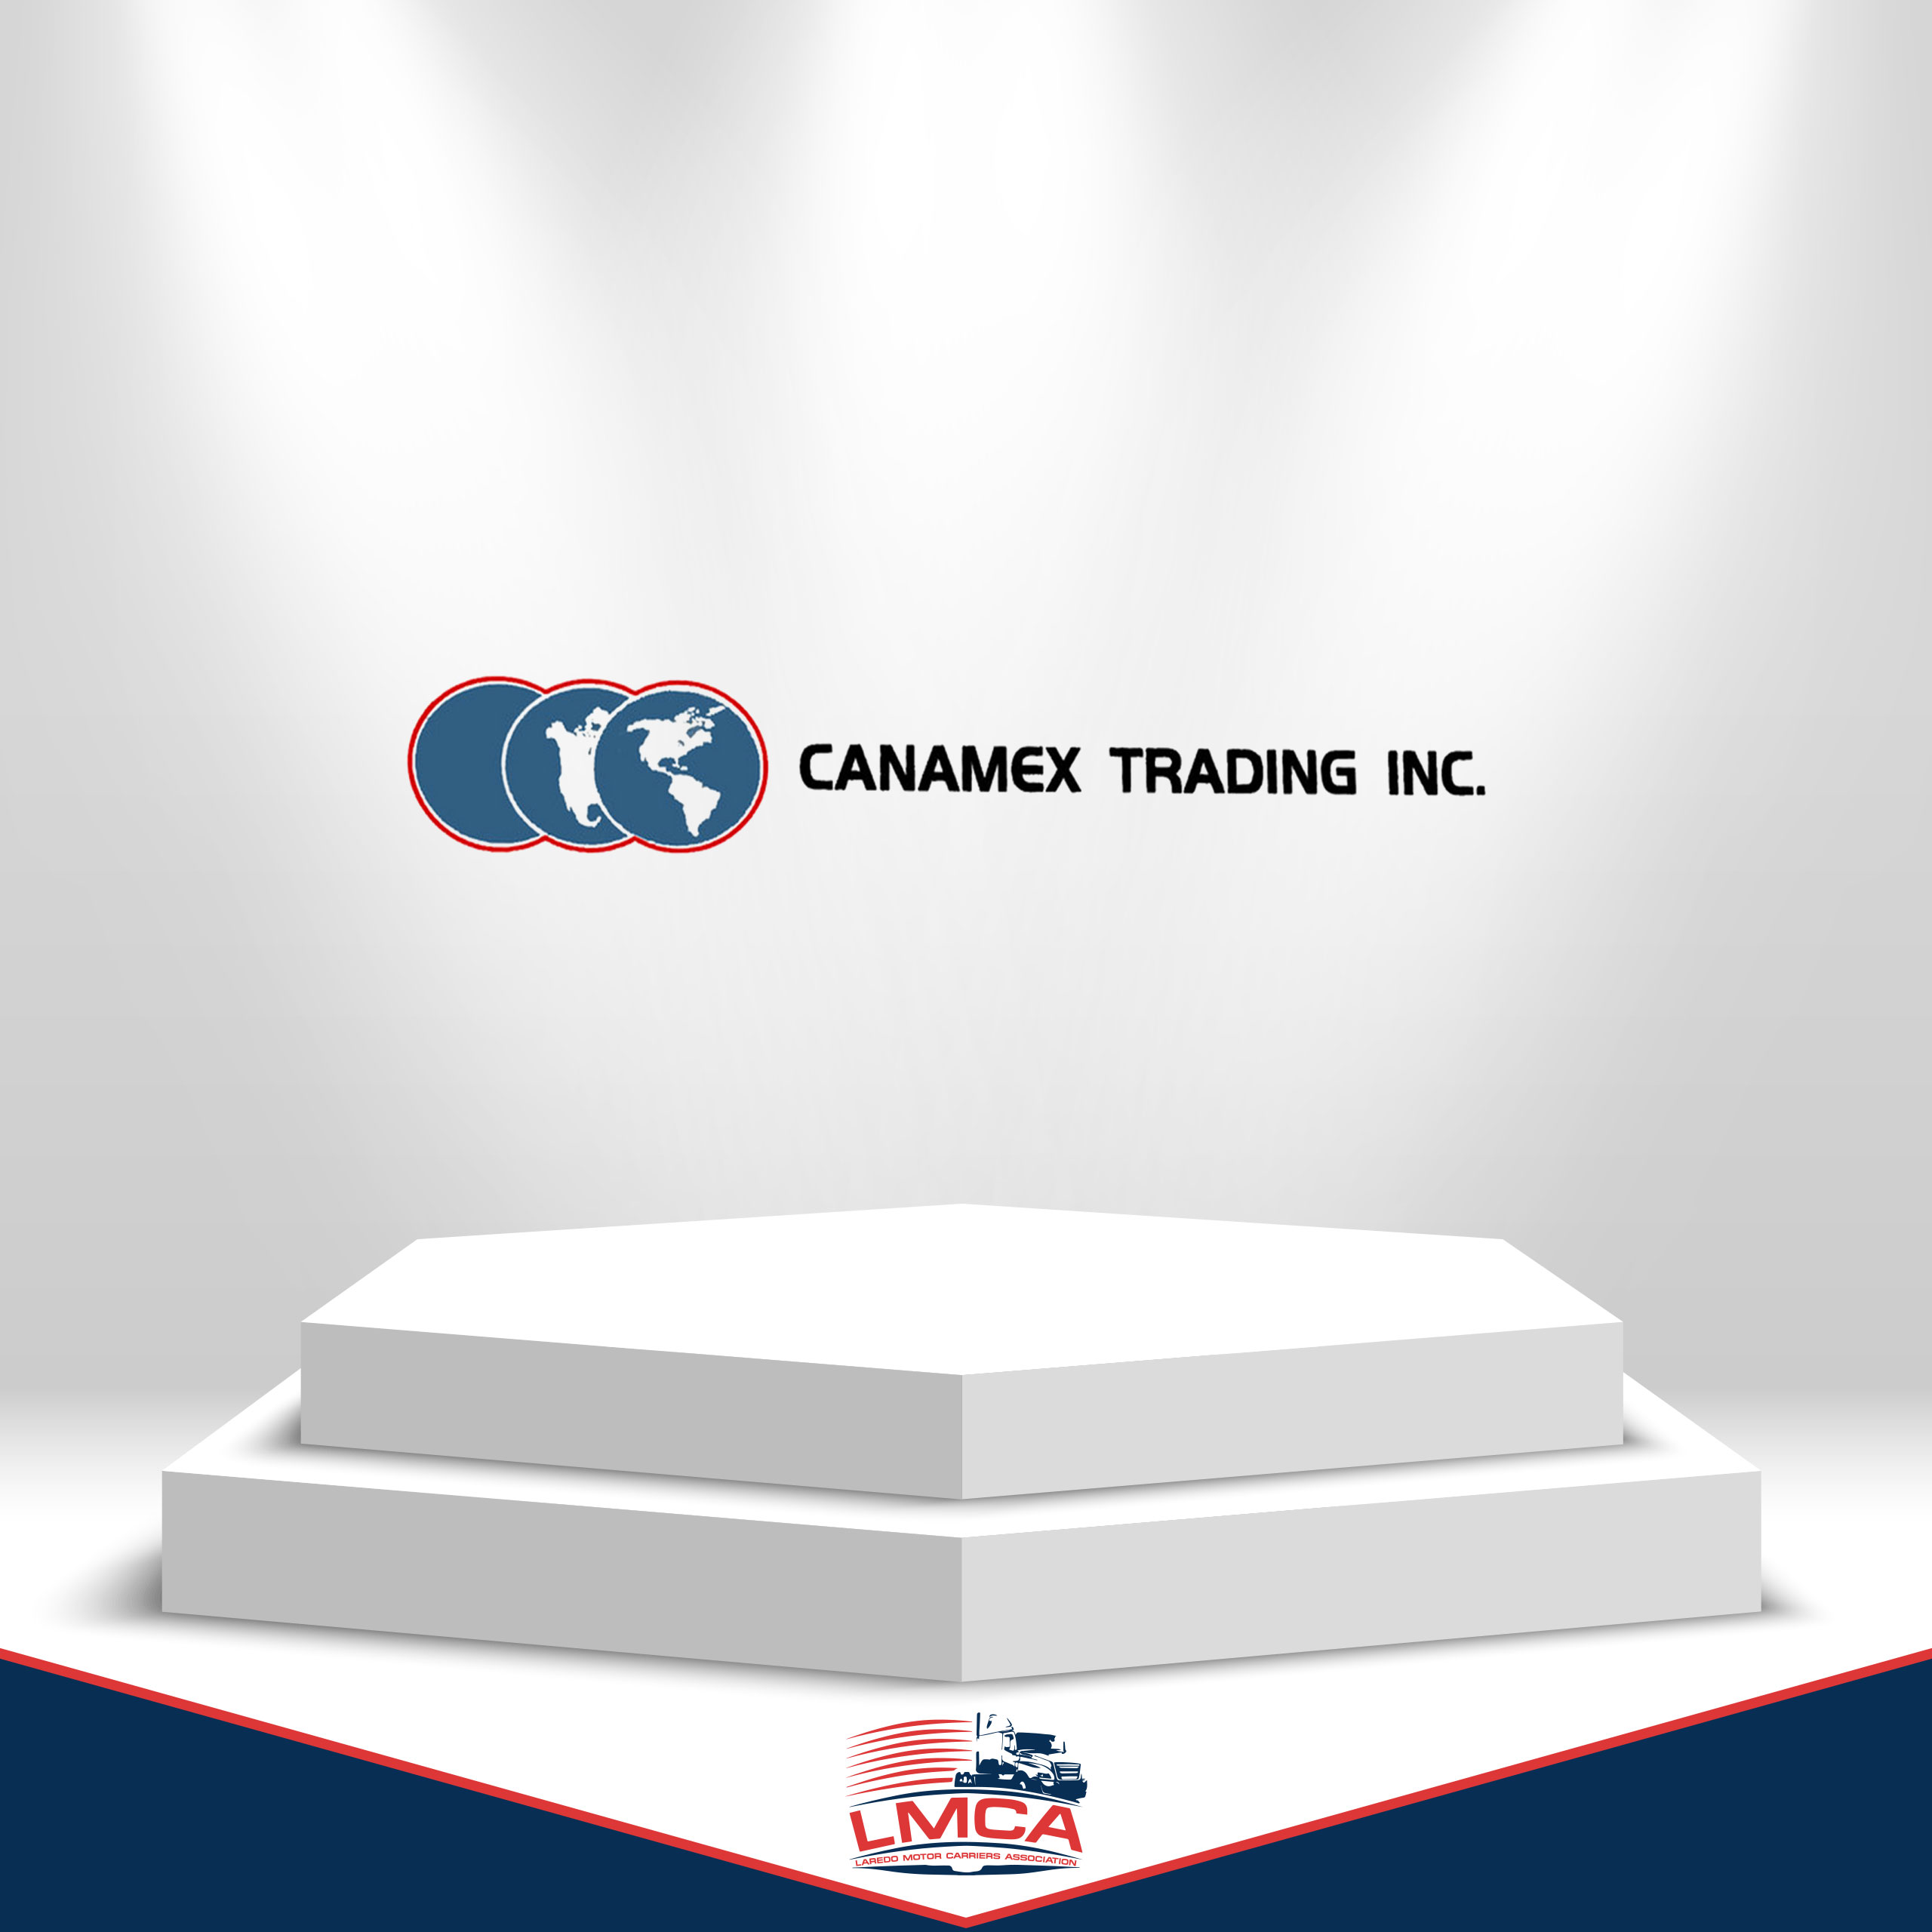 canamex trading